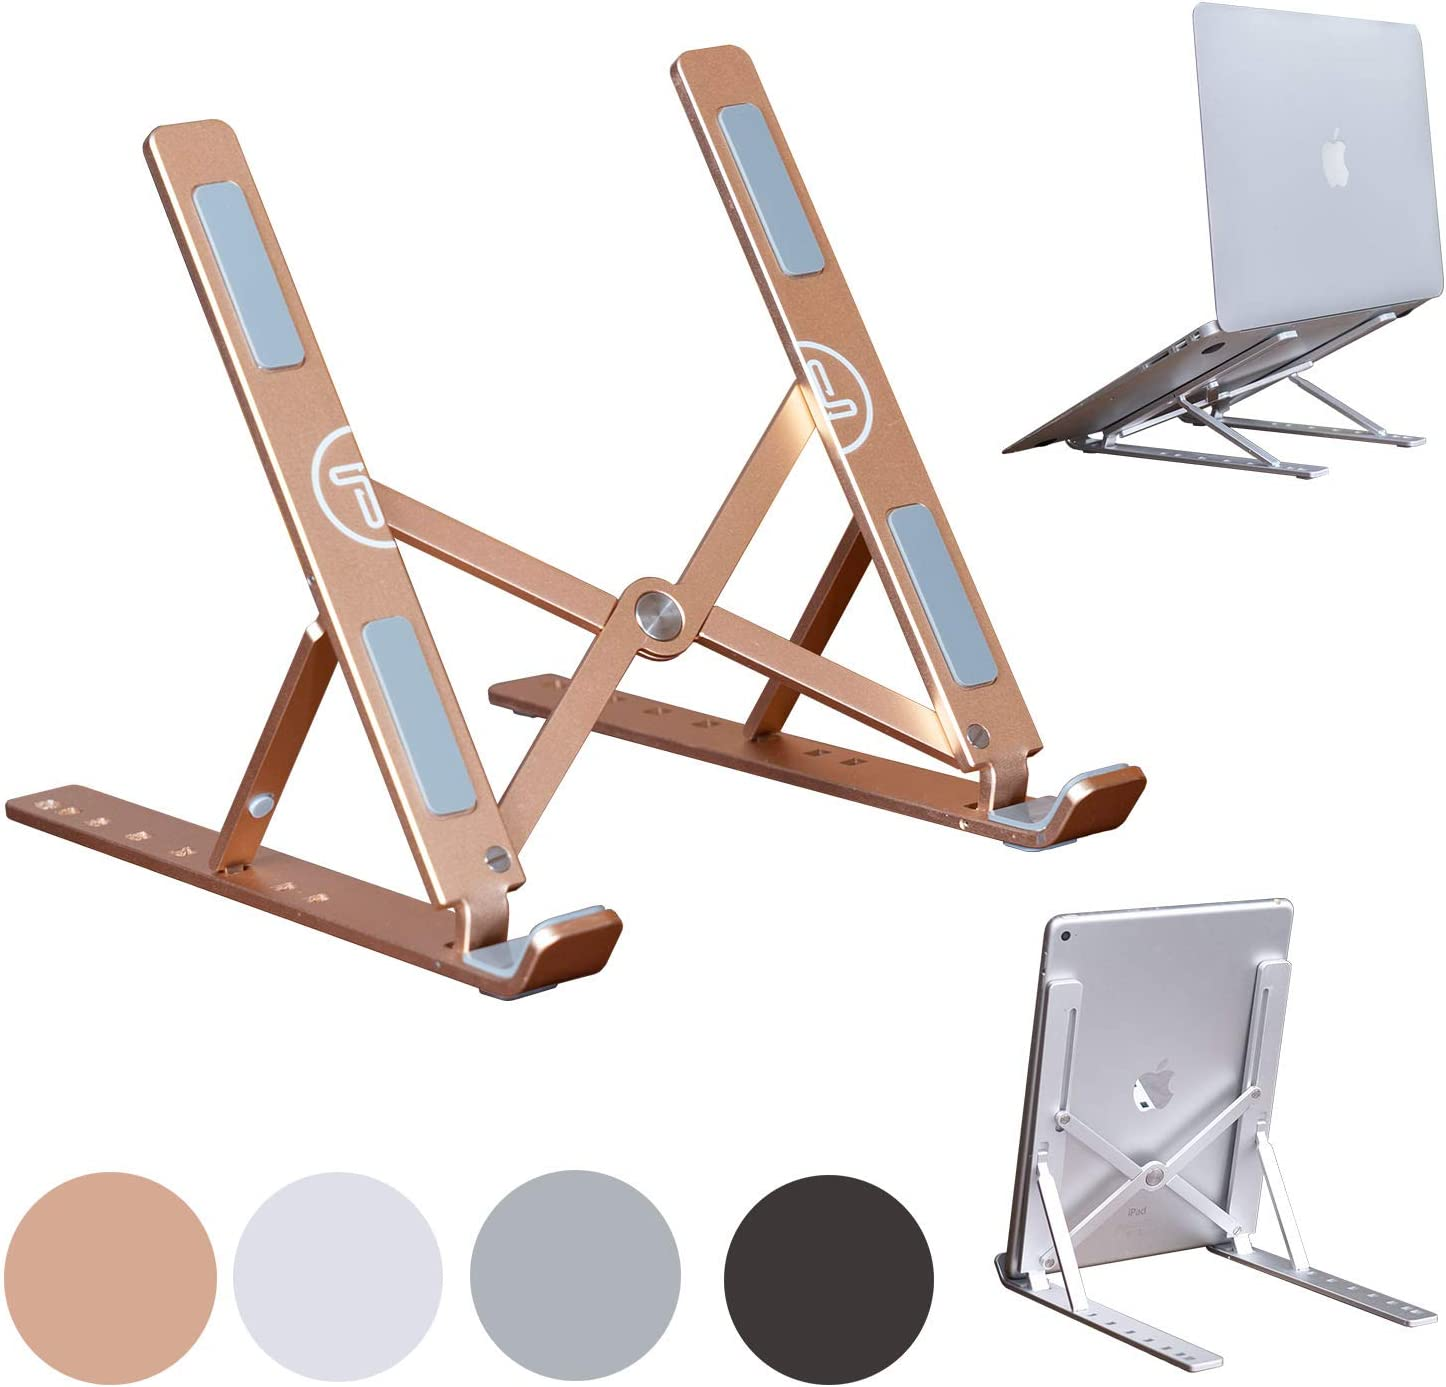 Portable Laptop Stand Foldable Aluminum Adjustable Laptop Stand for Desk with 7 Angle Adjustable Stand for MacBook Air, MacBook Pro, iPad and Tablet, Laptop. (Gold) (Rose Gold)